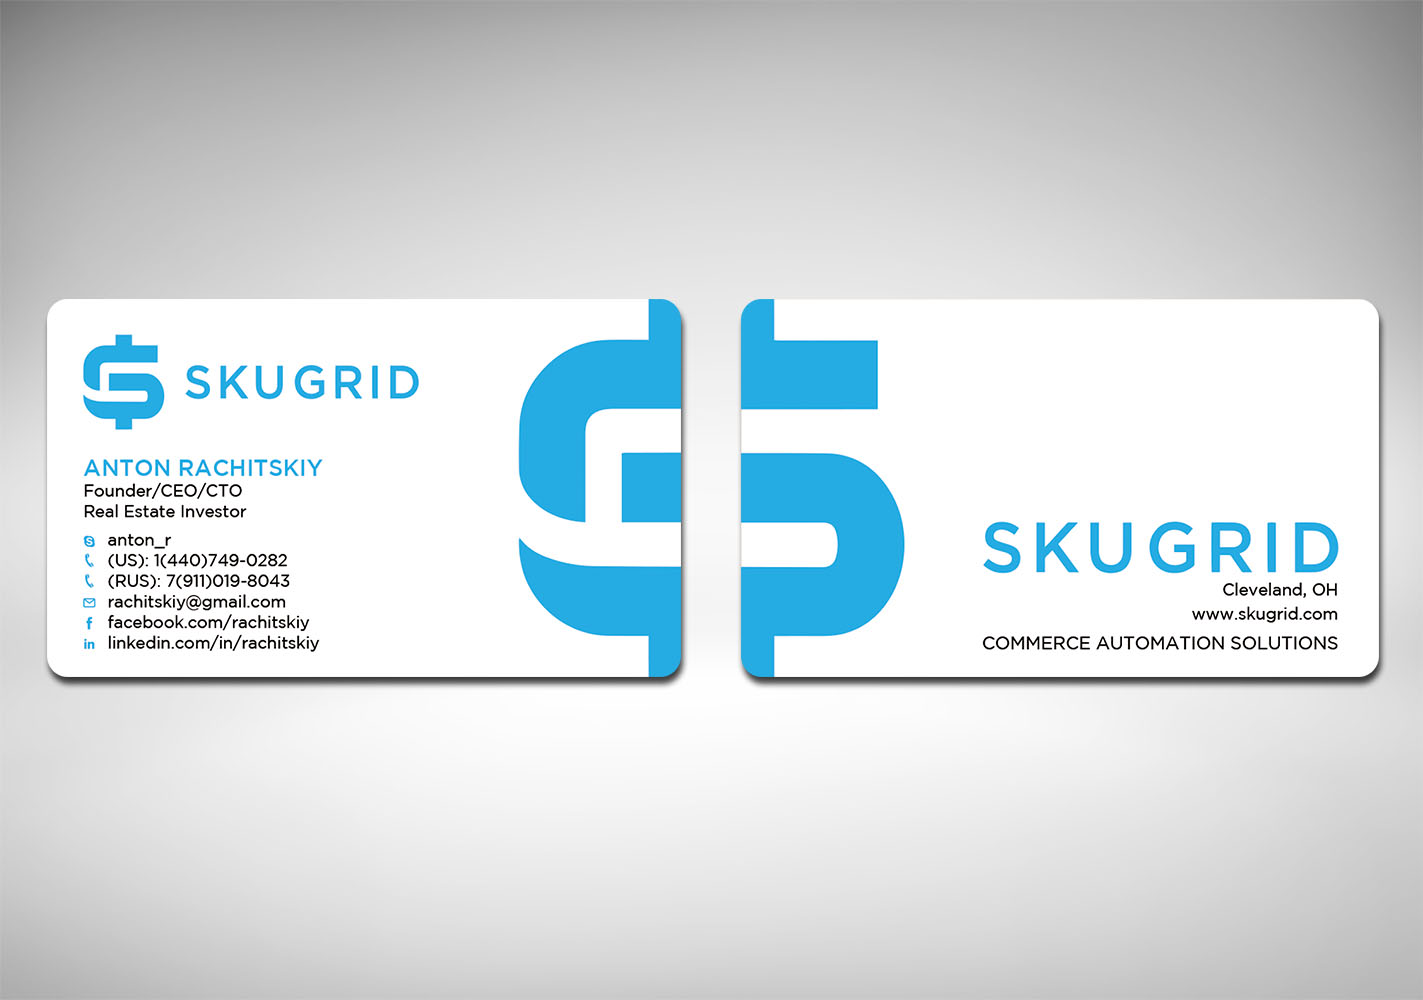 Facebook Ceo Business Card Image collections - Business Card Template